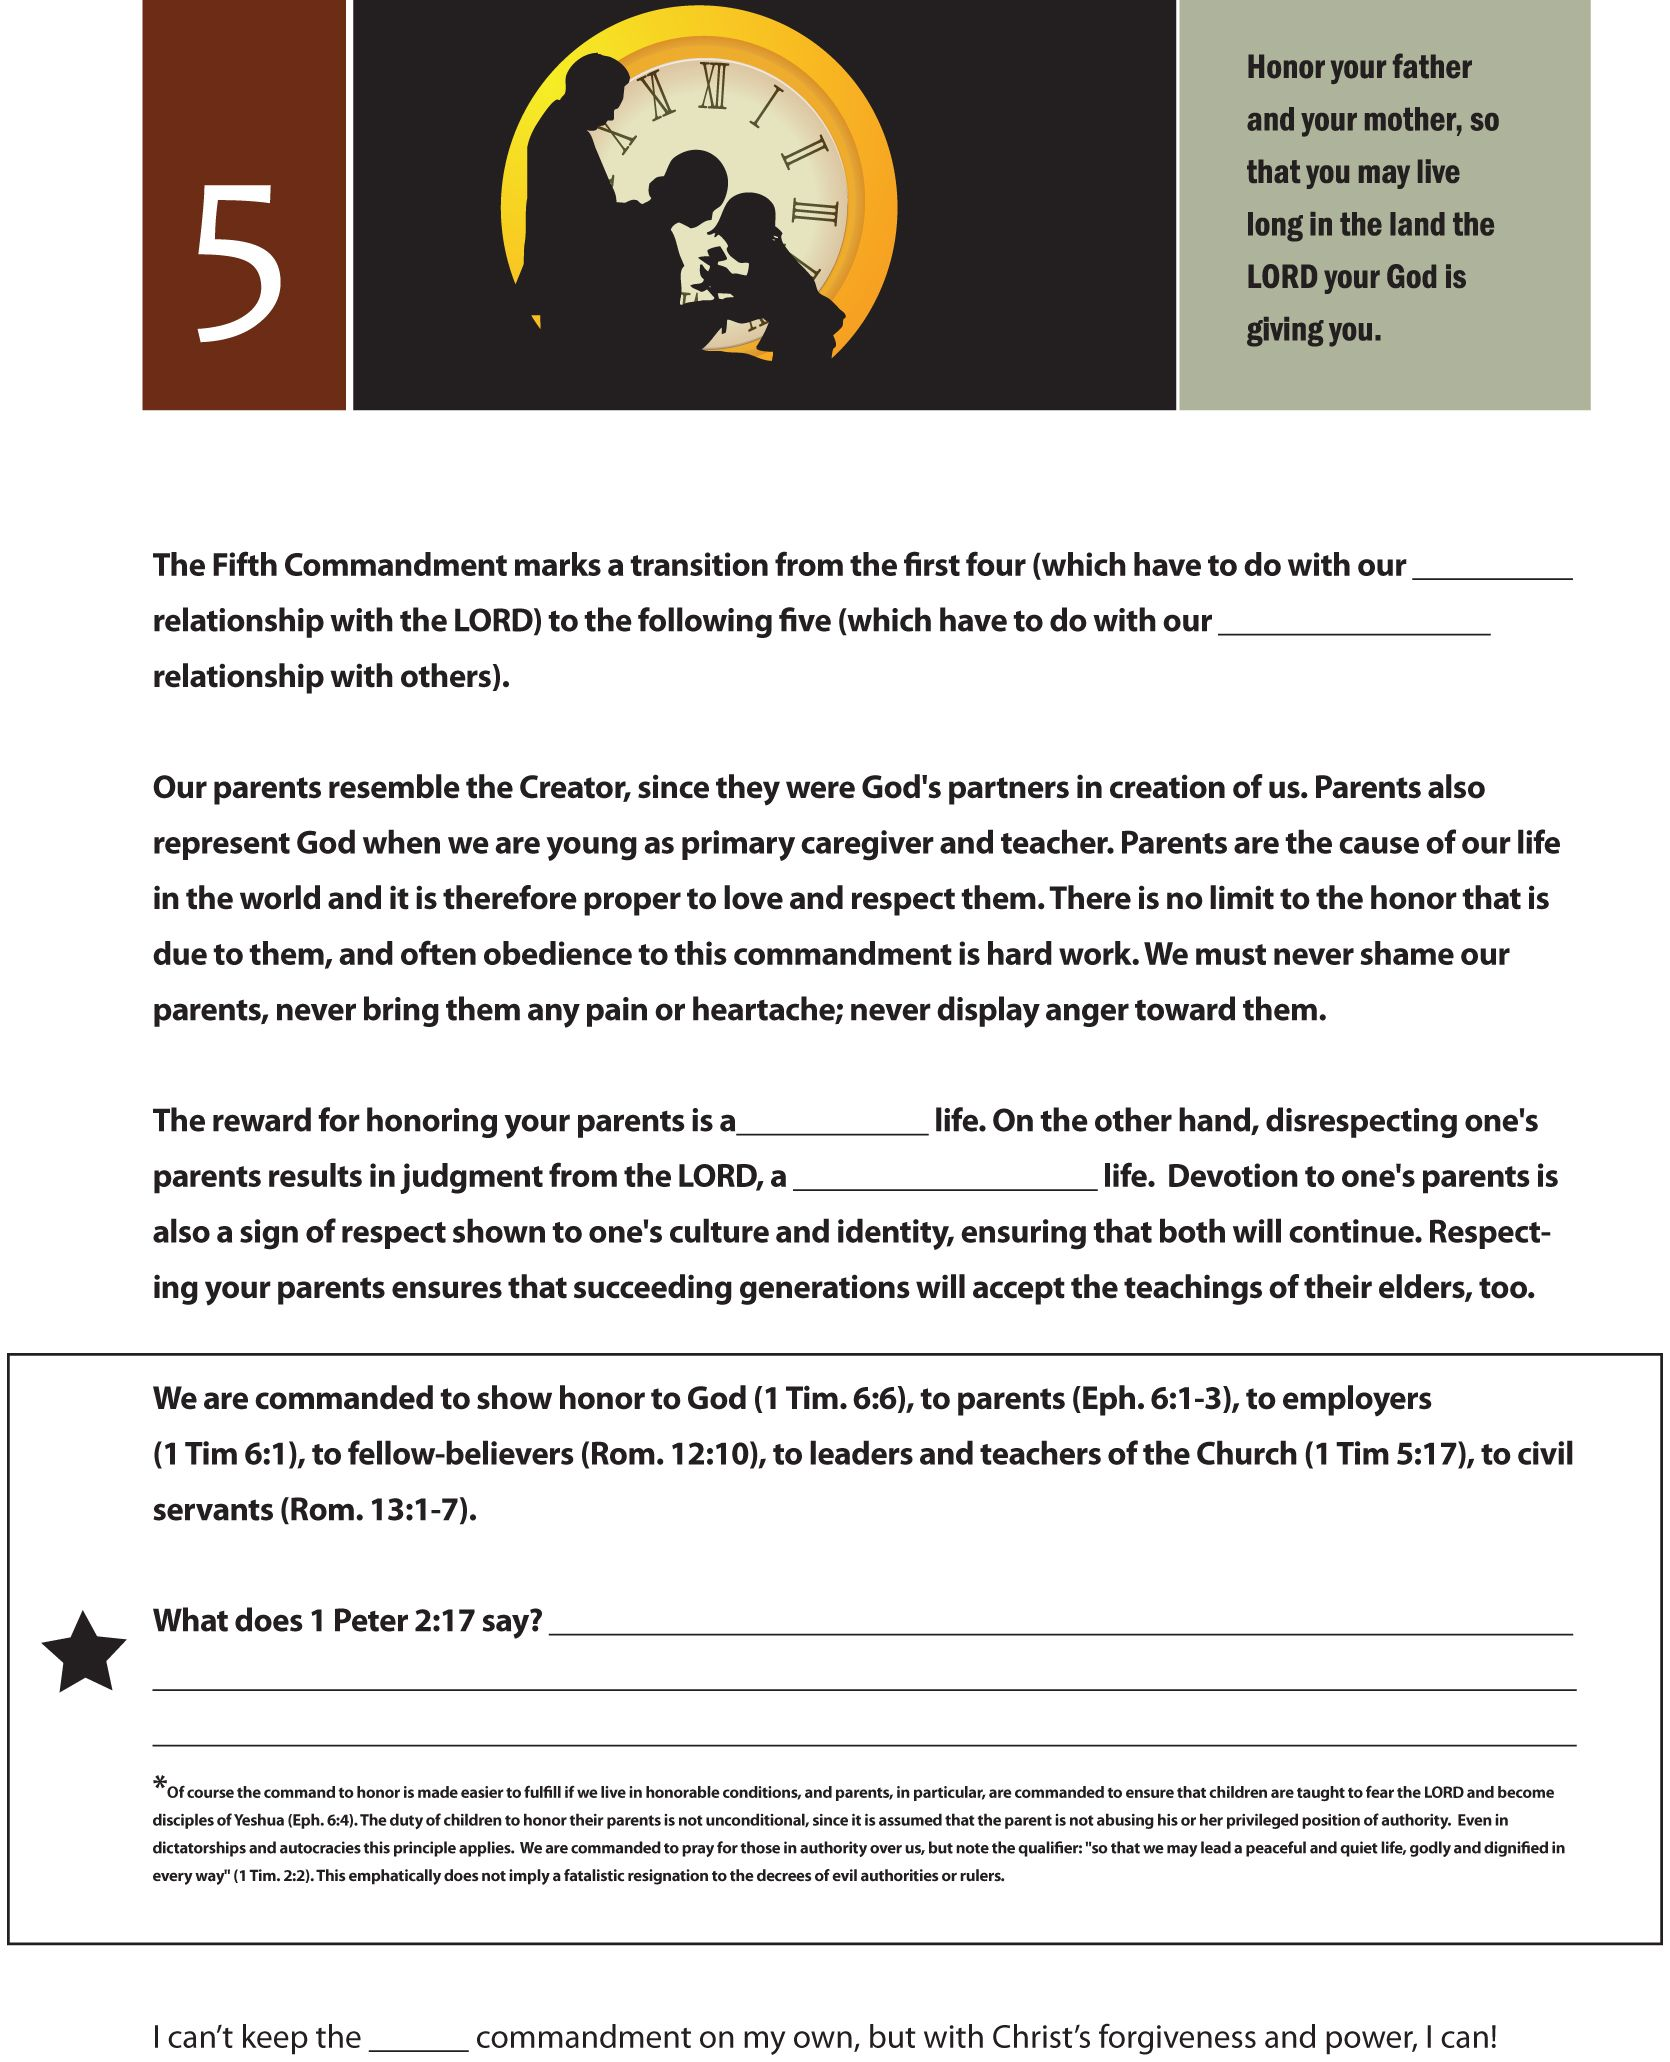 Worksheet To Teach The Fifth Of The 10 Commandments Honor Your Mother And Father So That You